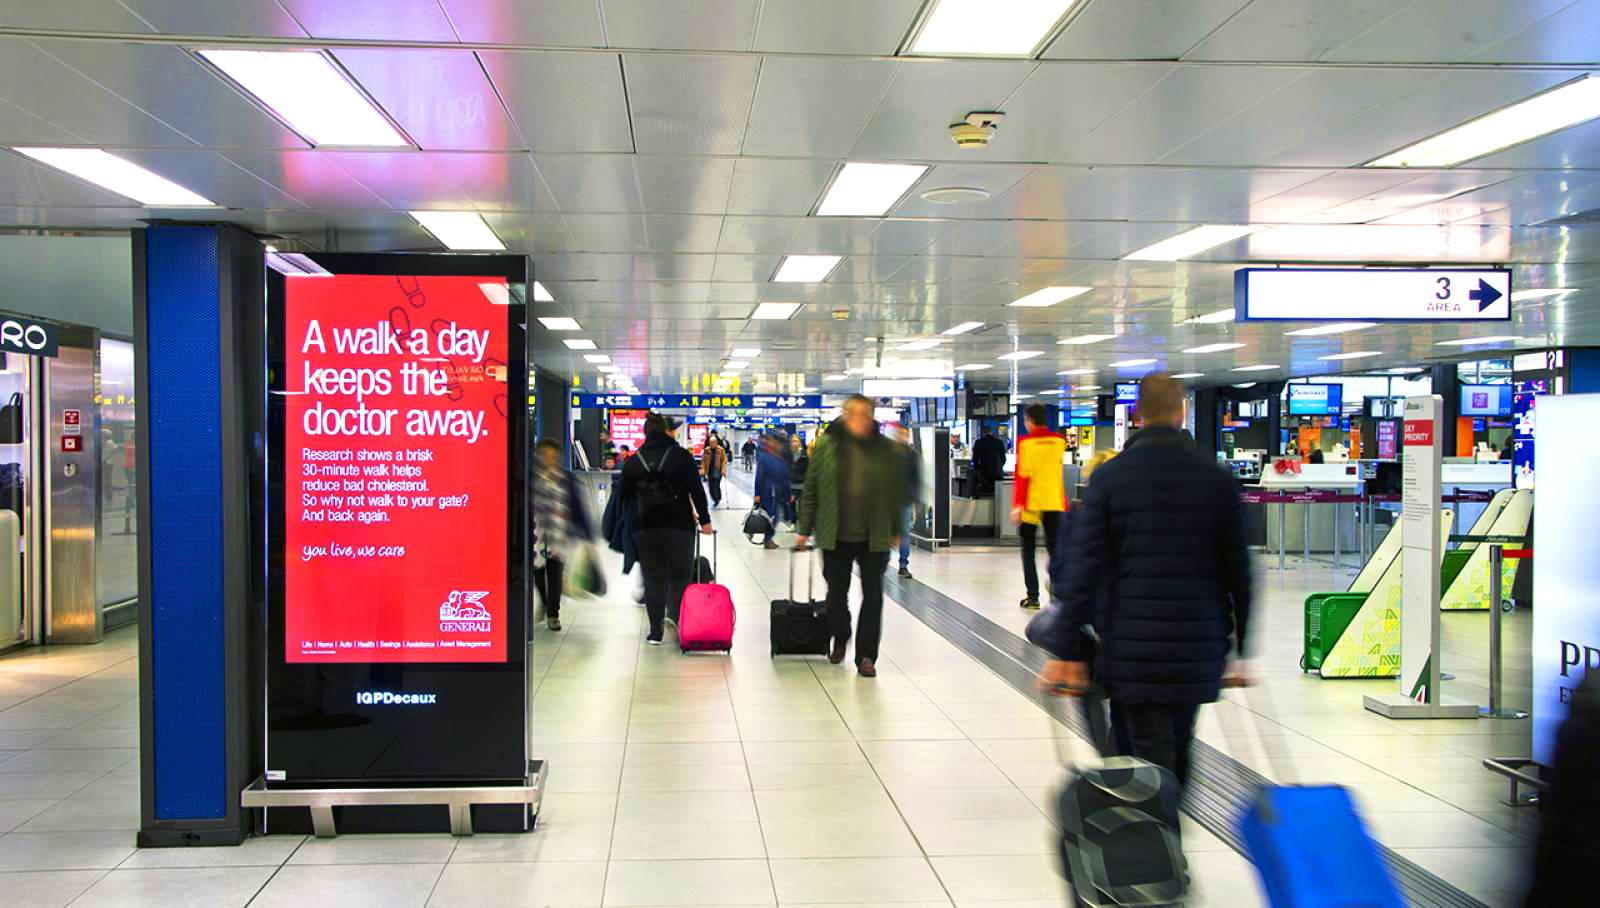 Airport advertising IGPDecaux digital network for Generali at Linate